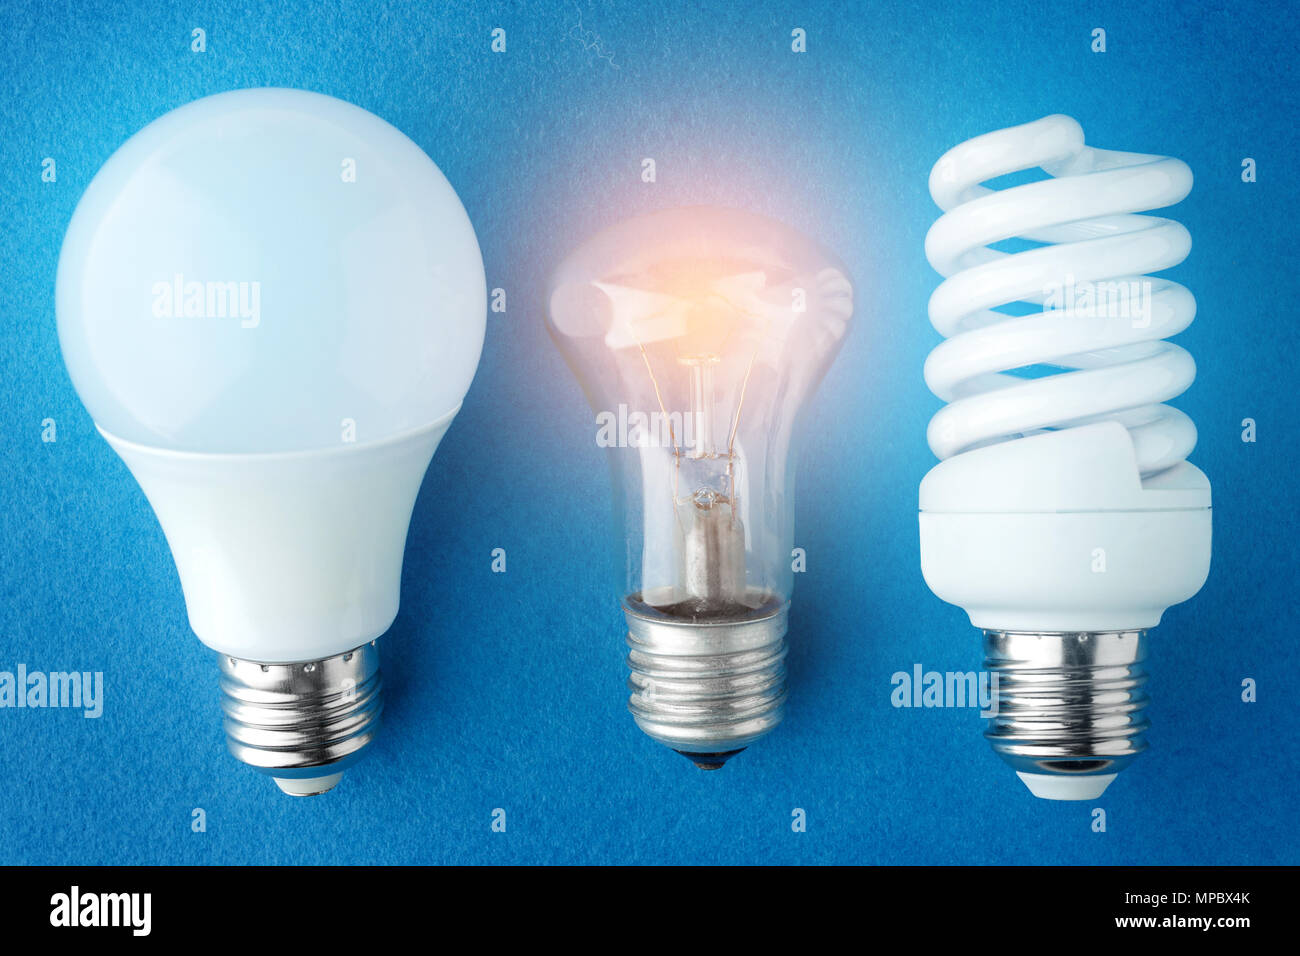 two LED lamps and an incandescent lamp on a blue background. Top view - Stock Image